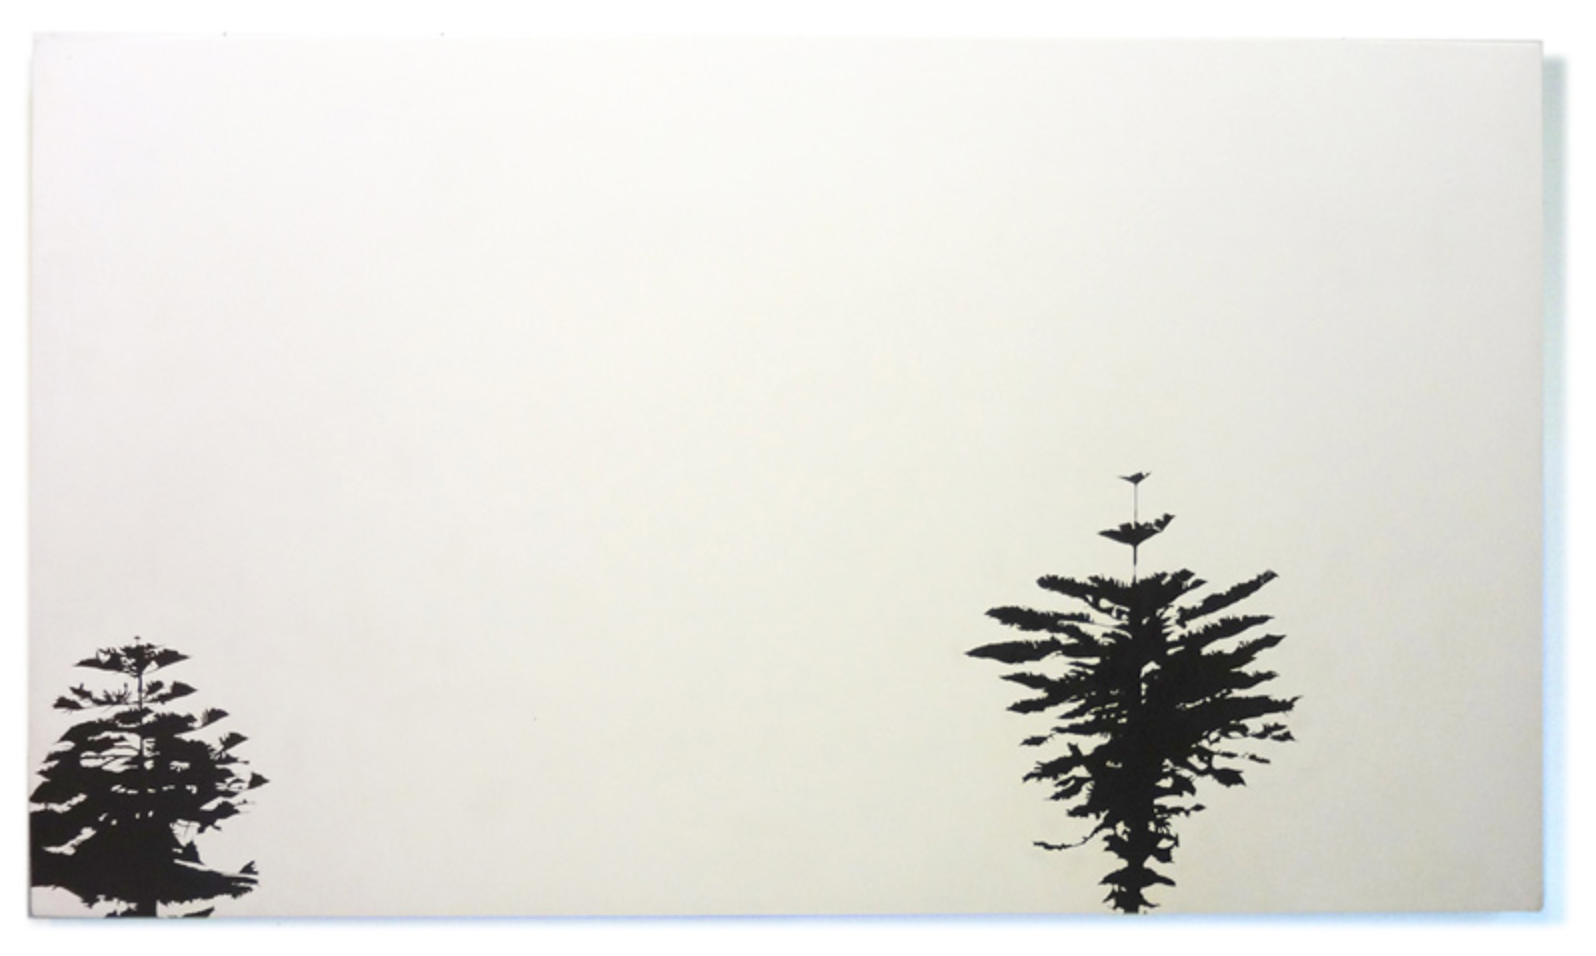 Meghan Gerety  The space between the finite and the infinite, 2001 graphite on clayboard panel 24 x 48 in.